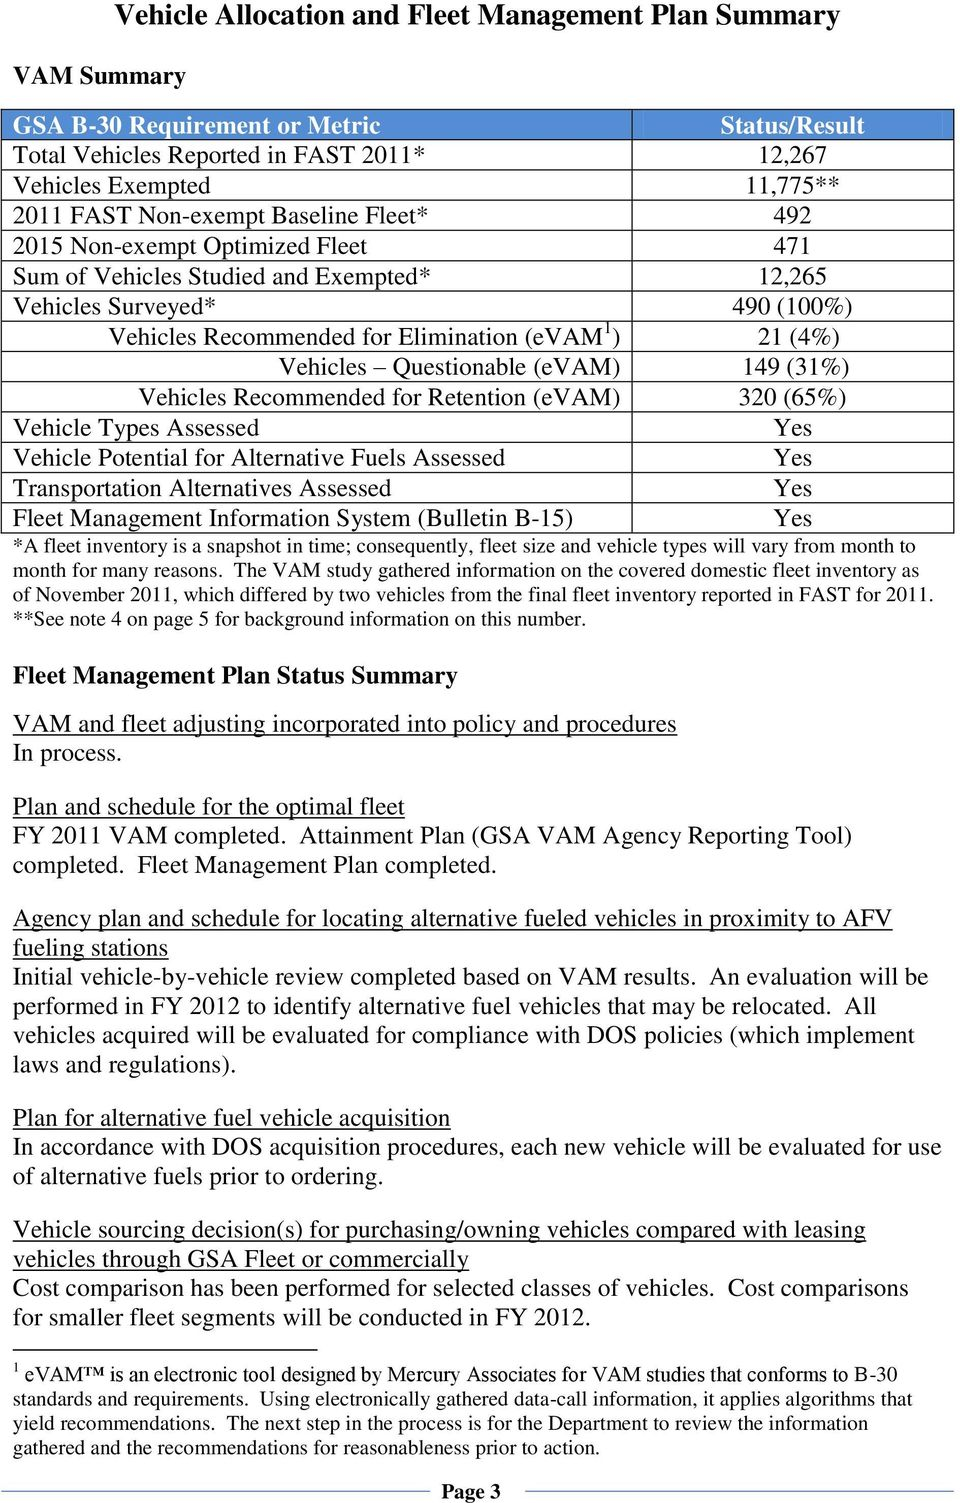 Vehicles Questionable (evam) 149 (31%) Vehicles Recommended for Retention (evam) 320 (65%) Vehicle Types Assessed Yes Vehicle Potential for Alternative Fuels Assessed Yes Transportation Alternatives